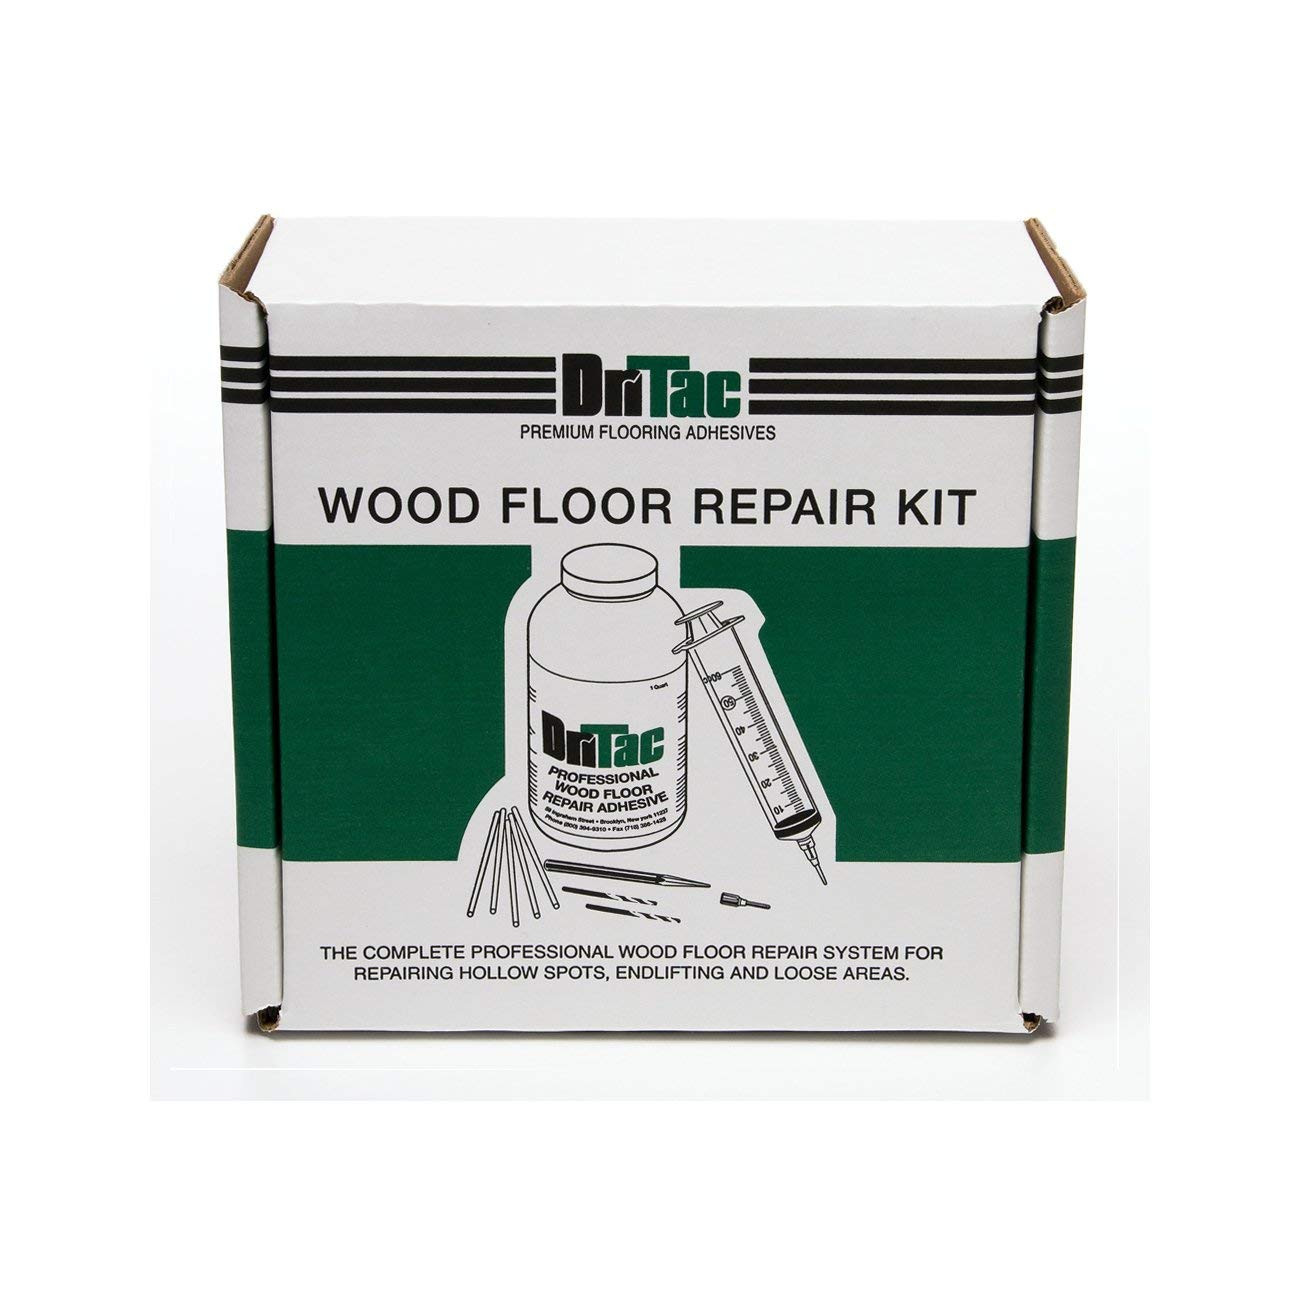 Can You Glue Down 3 4 Inch Hardwood Flooring Of Amazon Com Dritac Wood Floor Repair Kit Engineered Flooring Only for Amazon Com Dritac Wood Floor Repair Kit Engineered Flooring Only 32oz Home Kitchen